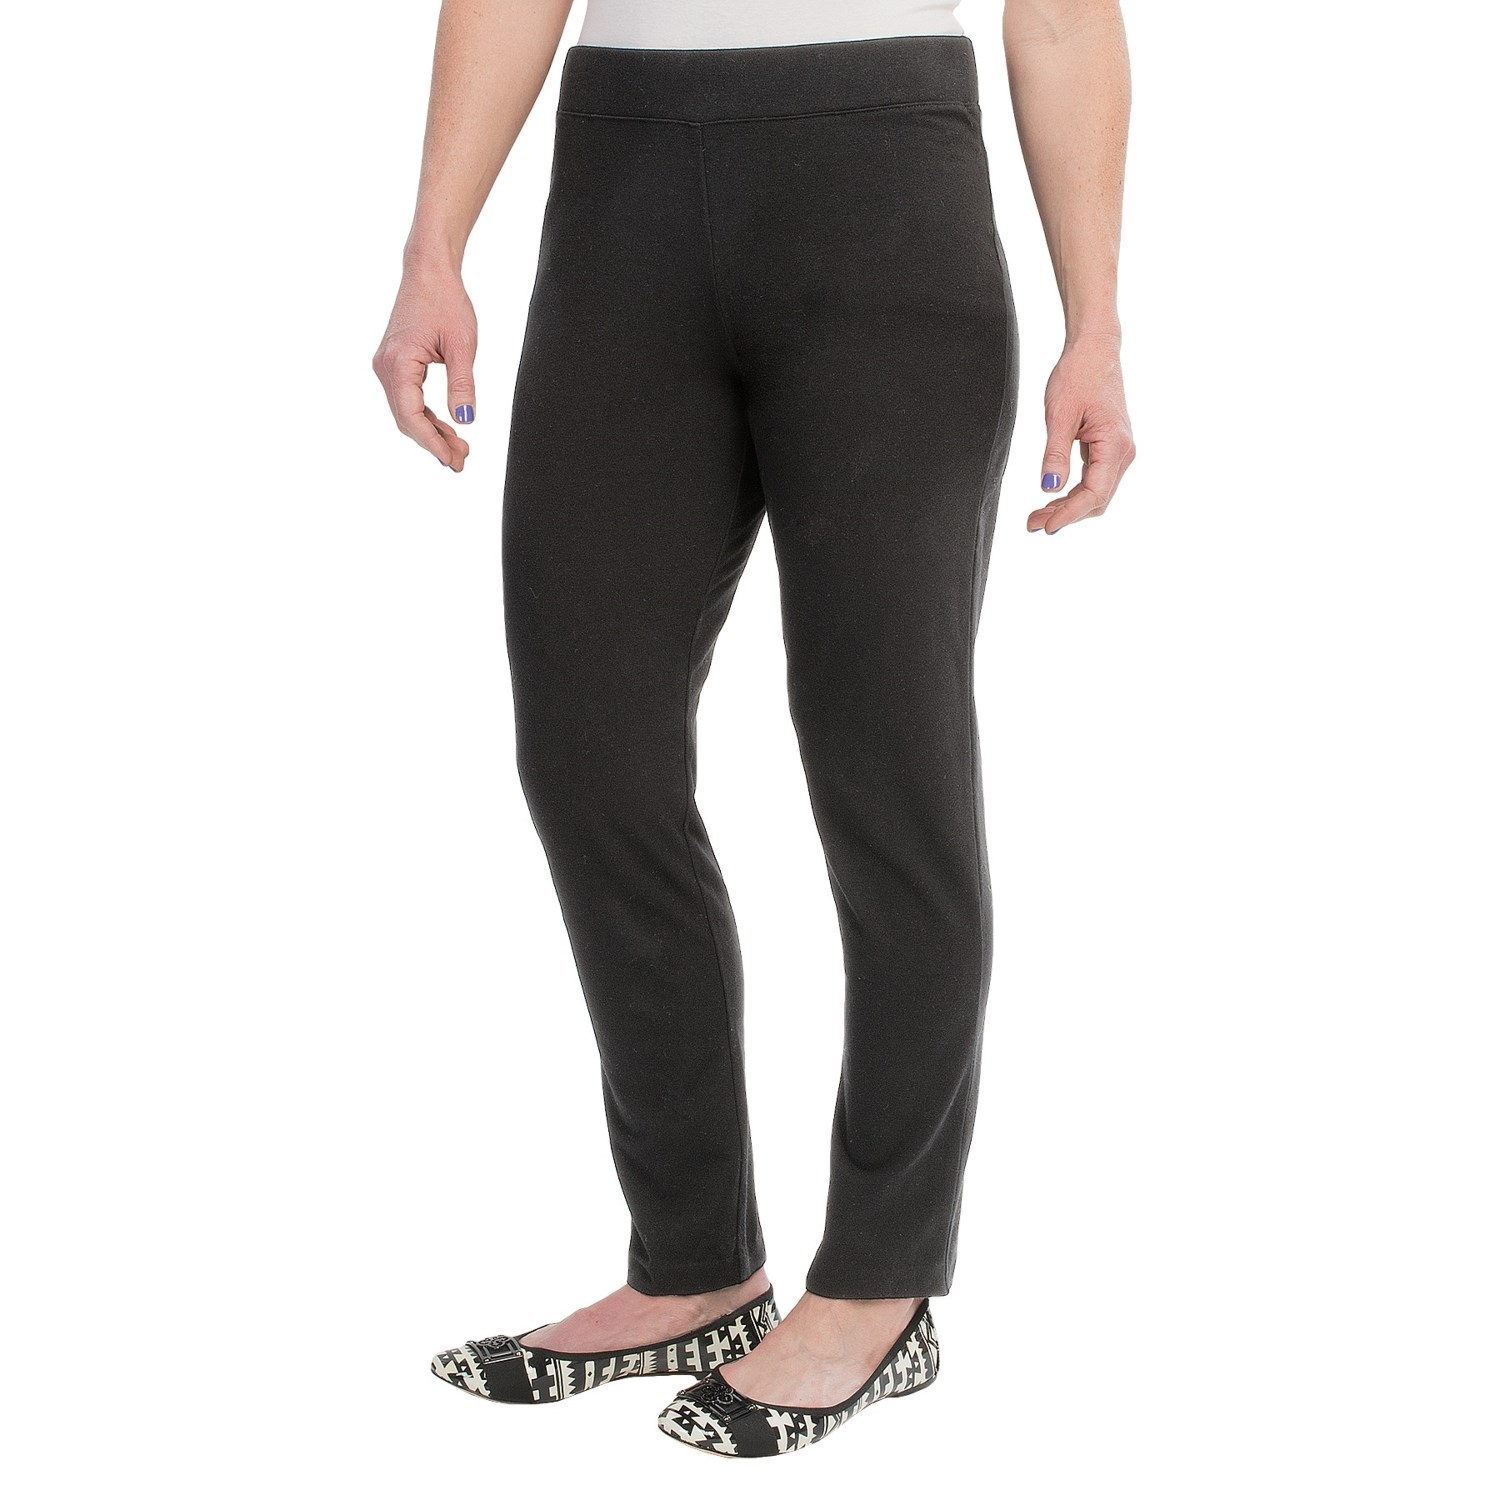 Eileen Fisher Petites Womens Knit Pull On Cropped Pants. Sold by BHFO. $ $ Eileen Fisher Womens Pull On Flat Front Cropped Pants. Sold by BHFO. $ $ FREE PEOPLE Womens Velour Pull On Wide Leg Pants. Sold by BHFO. $ $ THEORY $ Womens New Black Pull On Straight leg Casual Pants 10 B+B.